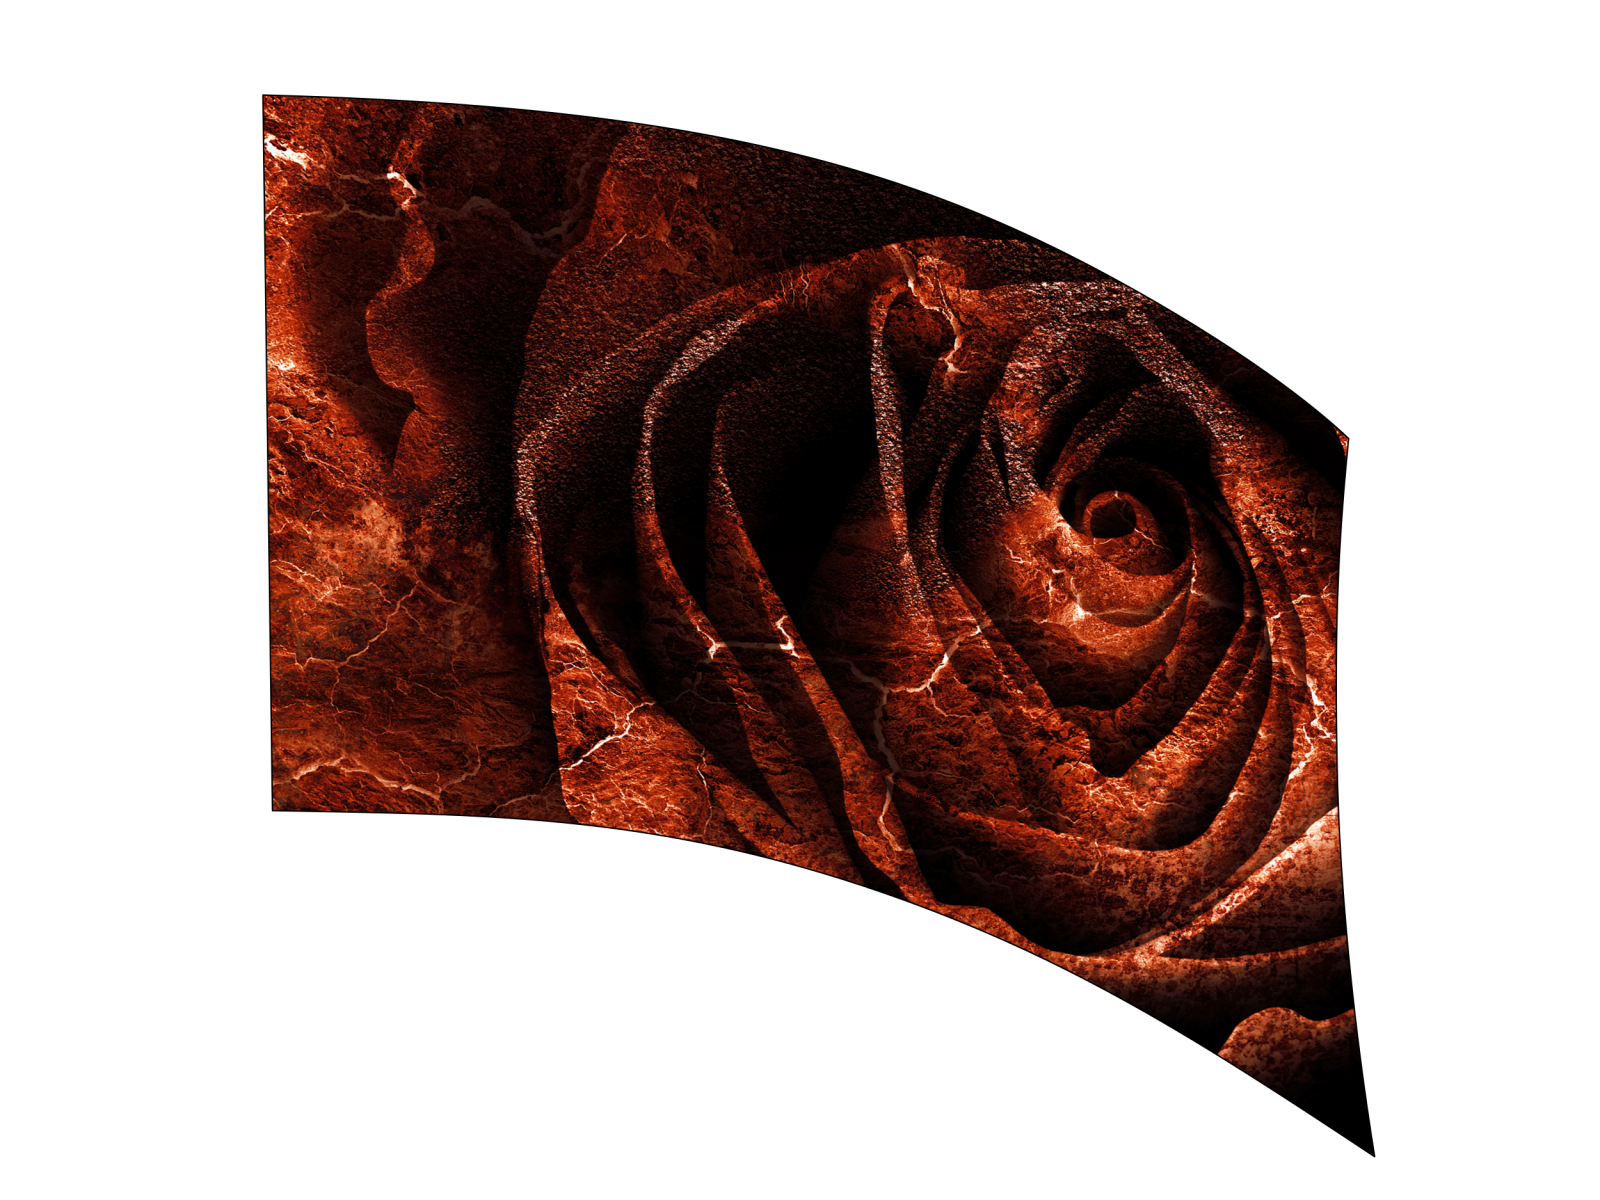 070207s - 36x52 Standard Blood Rose